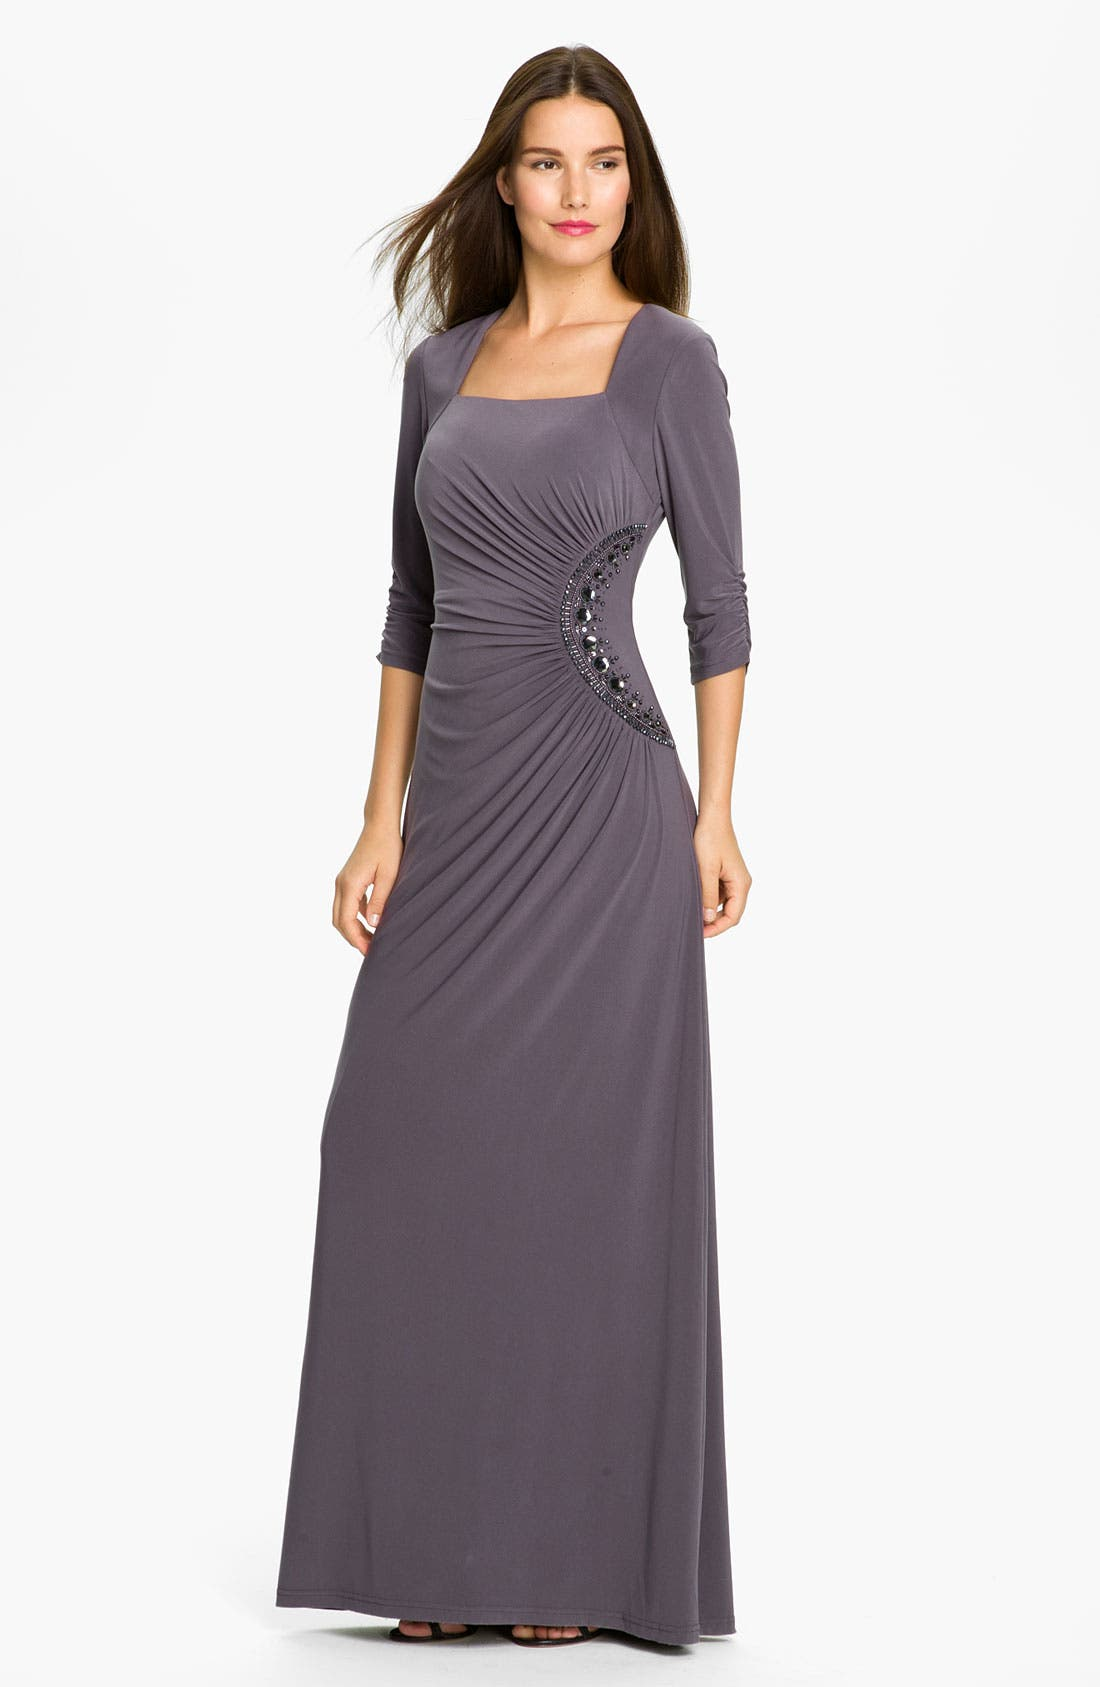 Alternate Image 1 Selected - Adrianna Papell Beaded Jersey Gown (Petite)